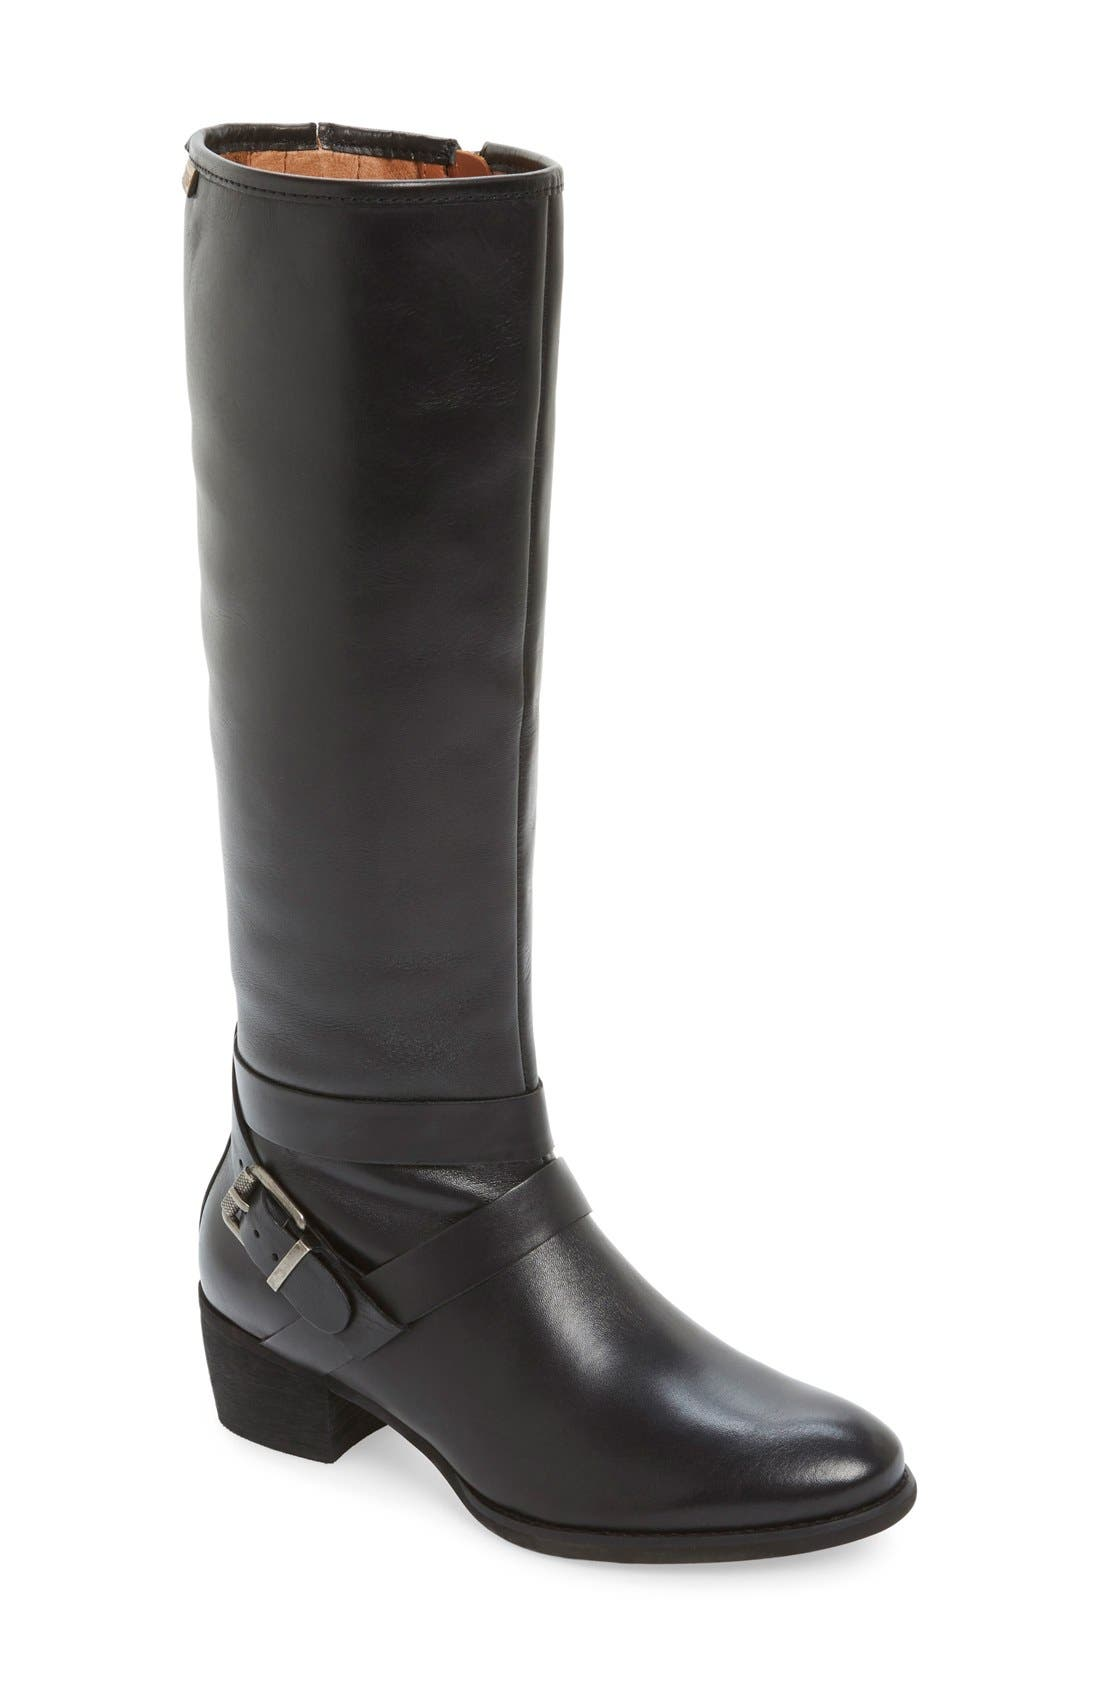 Main Image - PIKOLINOS 'Hamilton' Knee High Boot (Women)